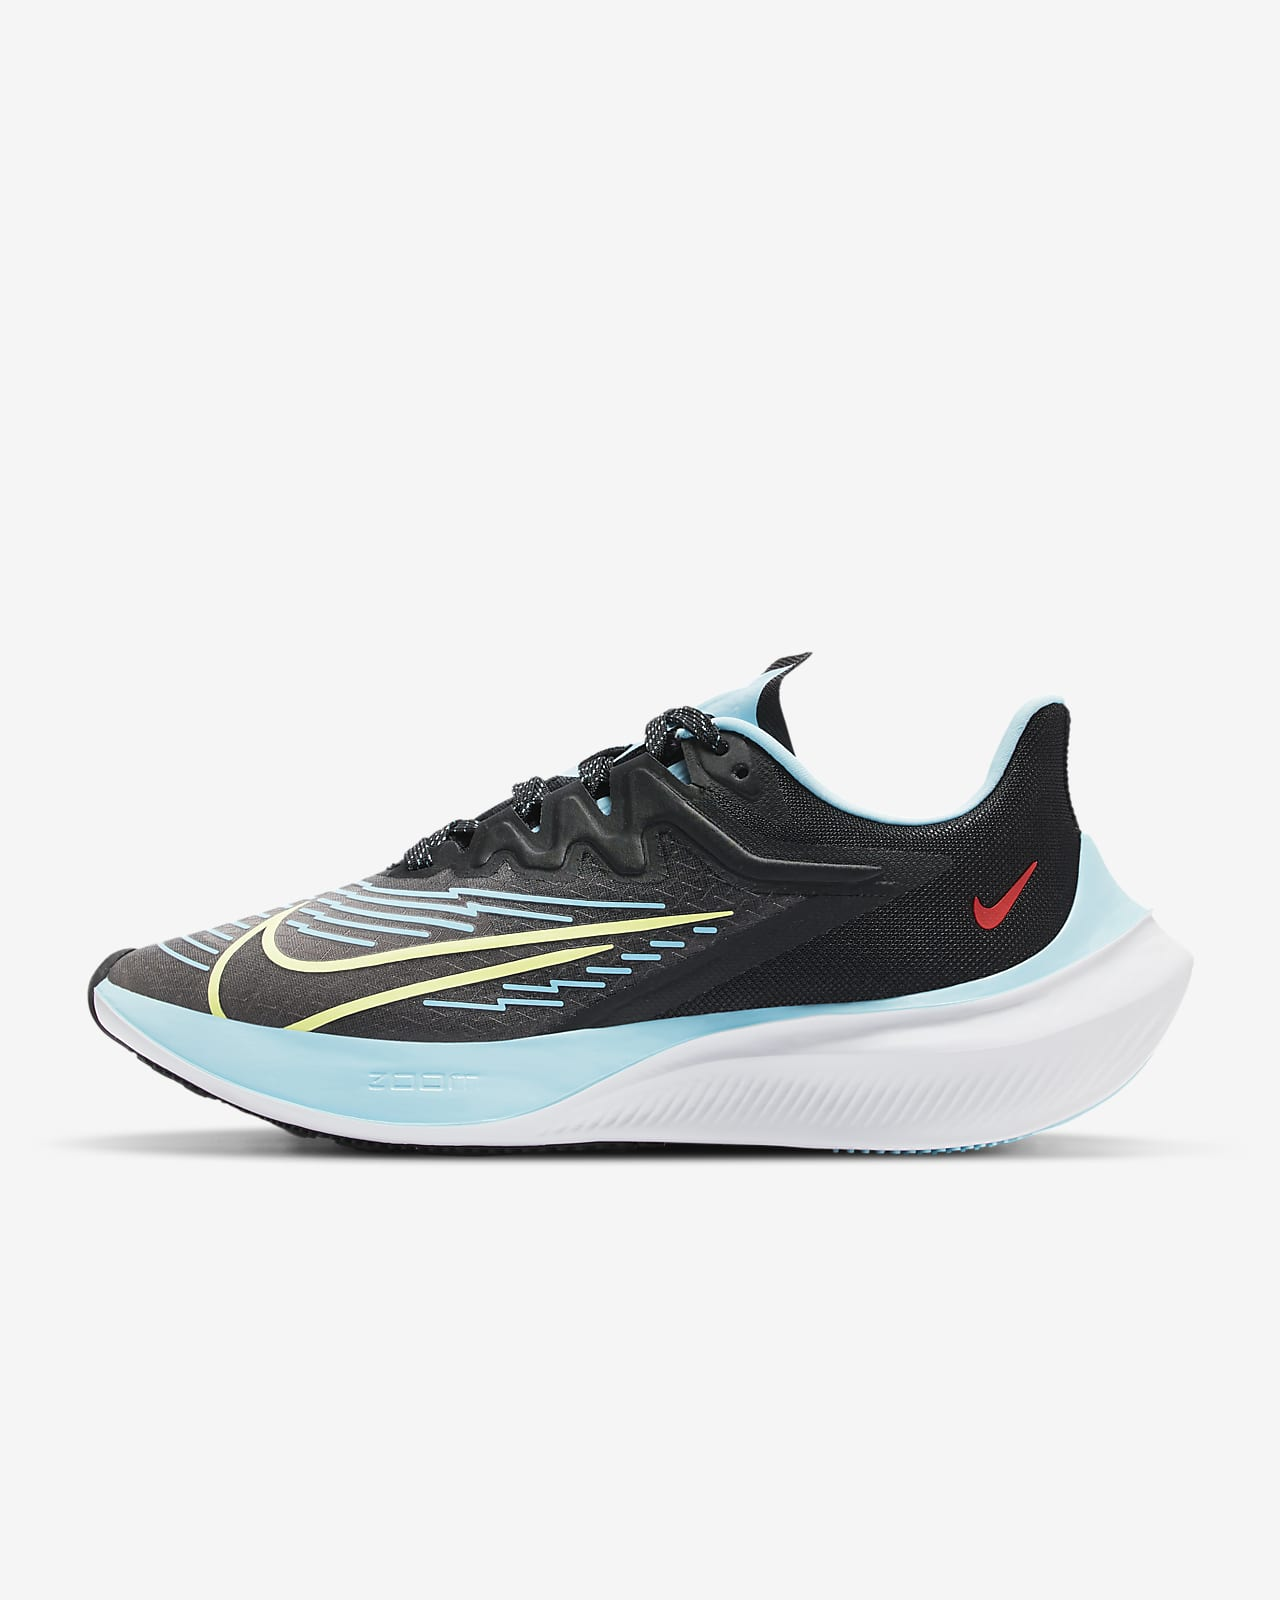 Nike Zoom Gravity 2 Women's Running Shoe